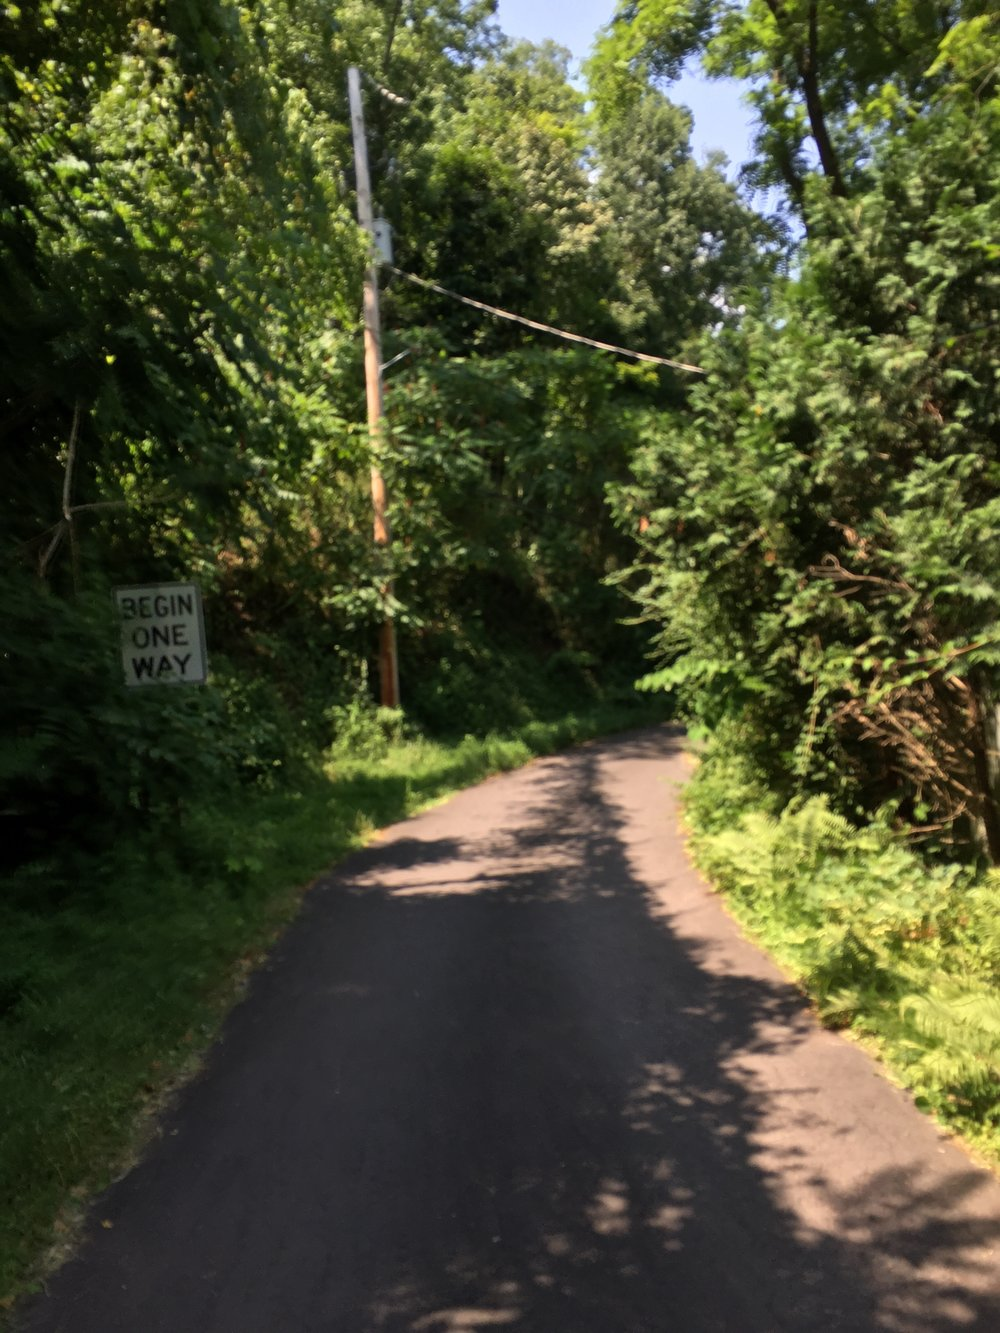 The shady overgrown unmaintained Uhlerstown Road has a seasonal gate at the top and bottom like Platte Cove Road in the Tour of the Catskills.